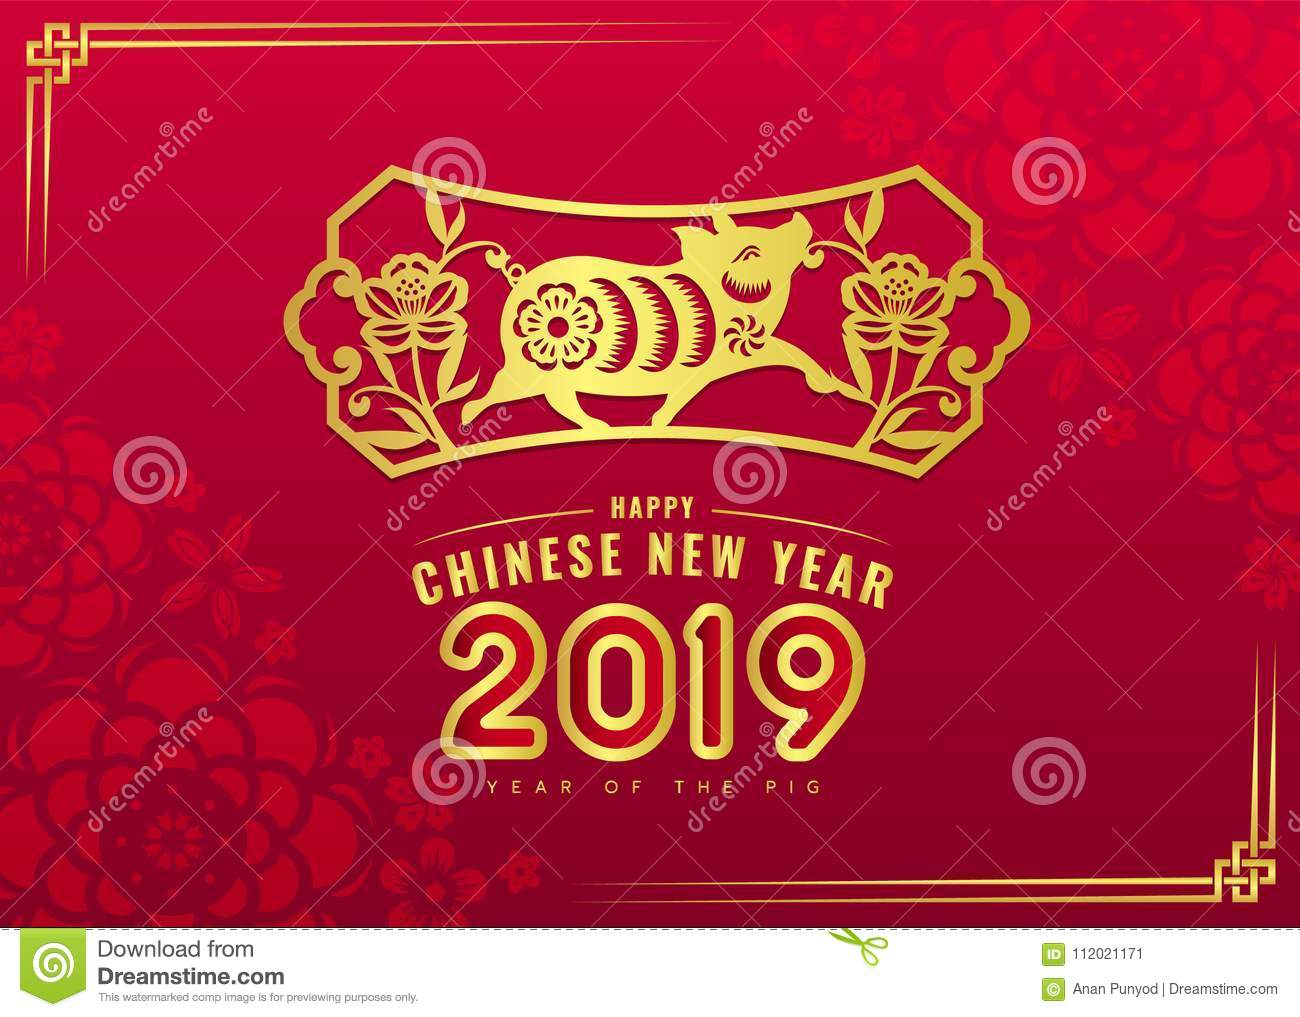 happy chinese new year 2019 card with gold pig zodiac and flower in frame sign on